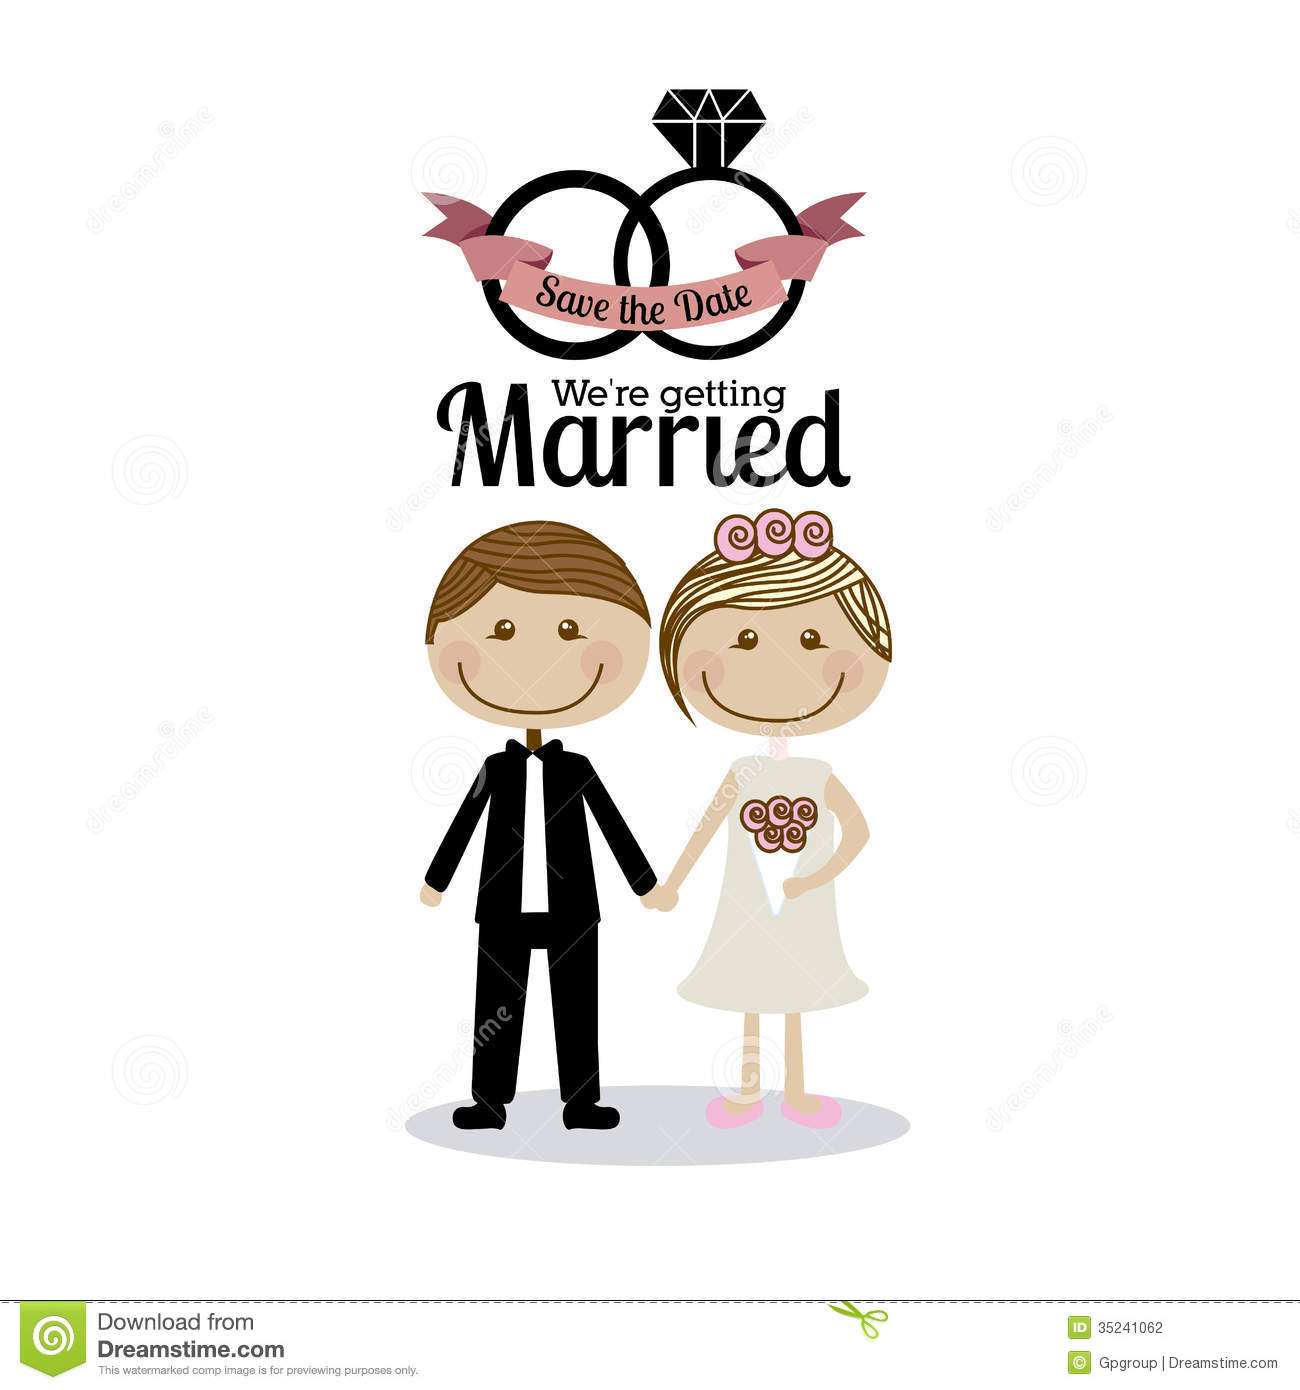 Married Design Stock Vector Illustration Of Cute Card